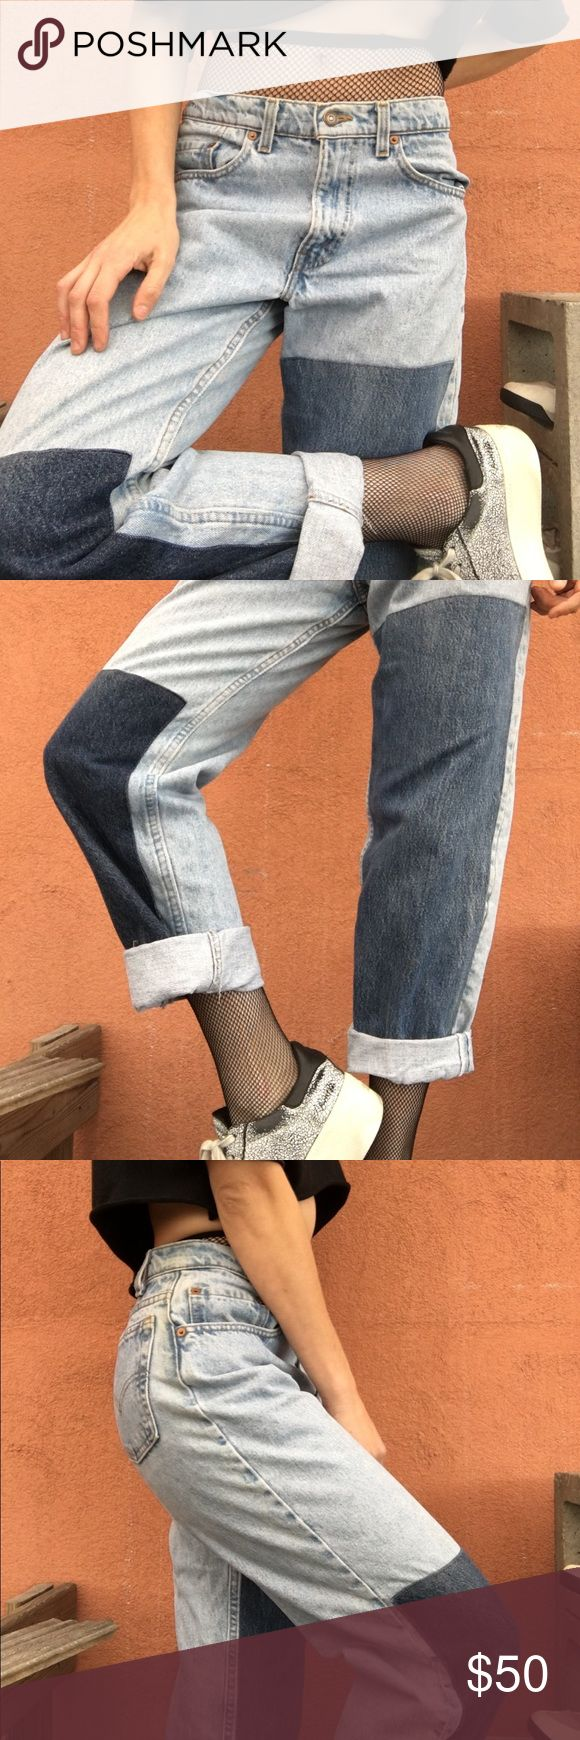 "Relaxed fit patchwork Levi jeans. Never worn. Waist 31"", Length 34"".  #jeans #boyfriendjeans #boyfriend #levisjeans #levis #patchwork #relaxedfit #athleticwear #denim #cheap #urbanoutfitters #fall #fallfashion #depop #forsale #vintage #fashion #style #vintagefashion #vintagestyle #unique Levi's Jeans Boyfriend"